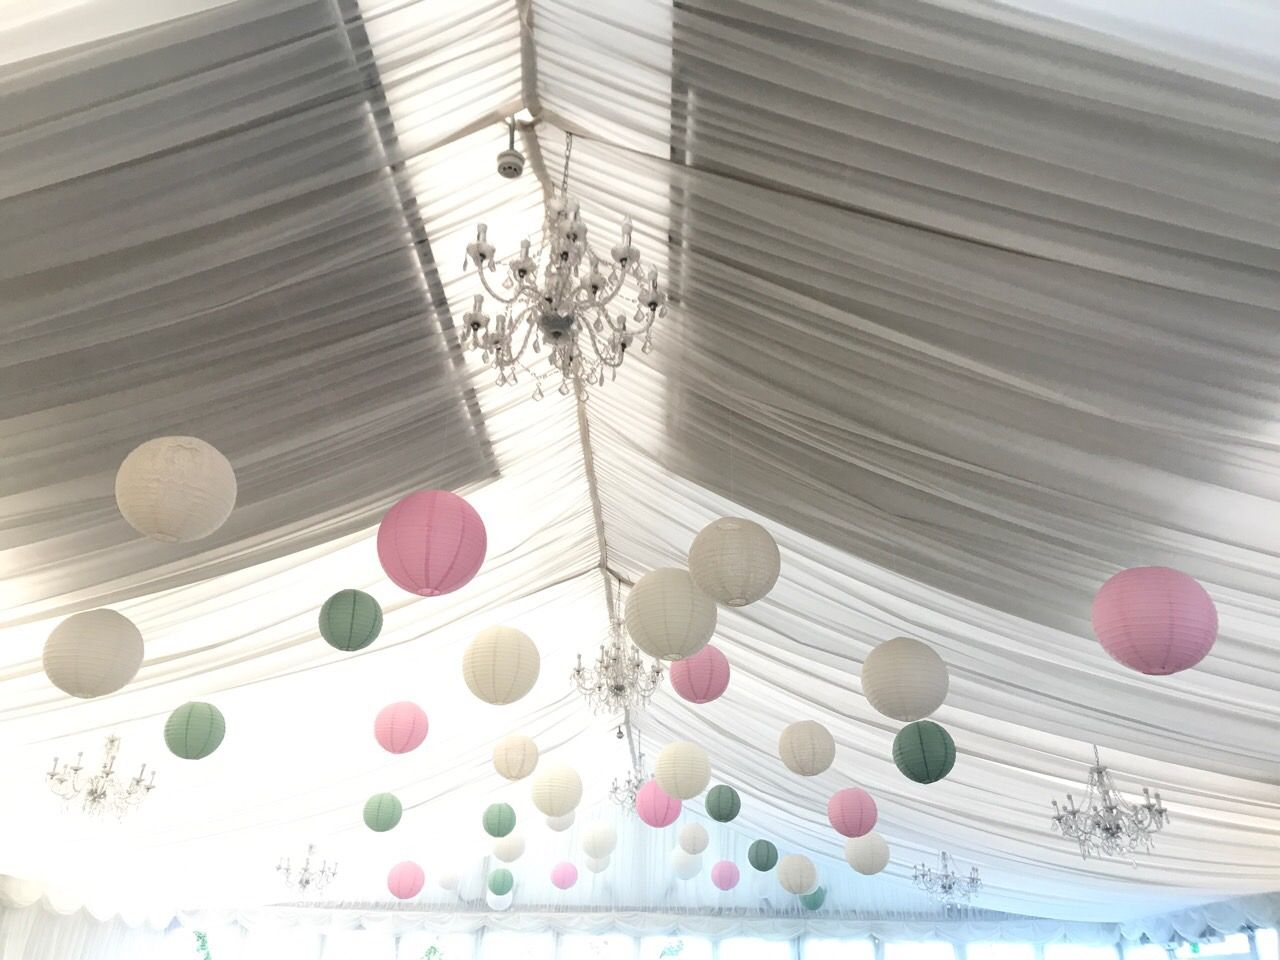 40 cream, lace, soft pink, sage green paper lanterns